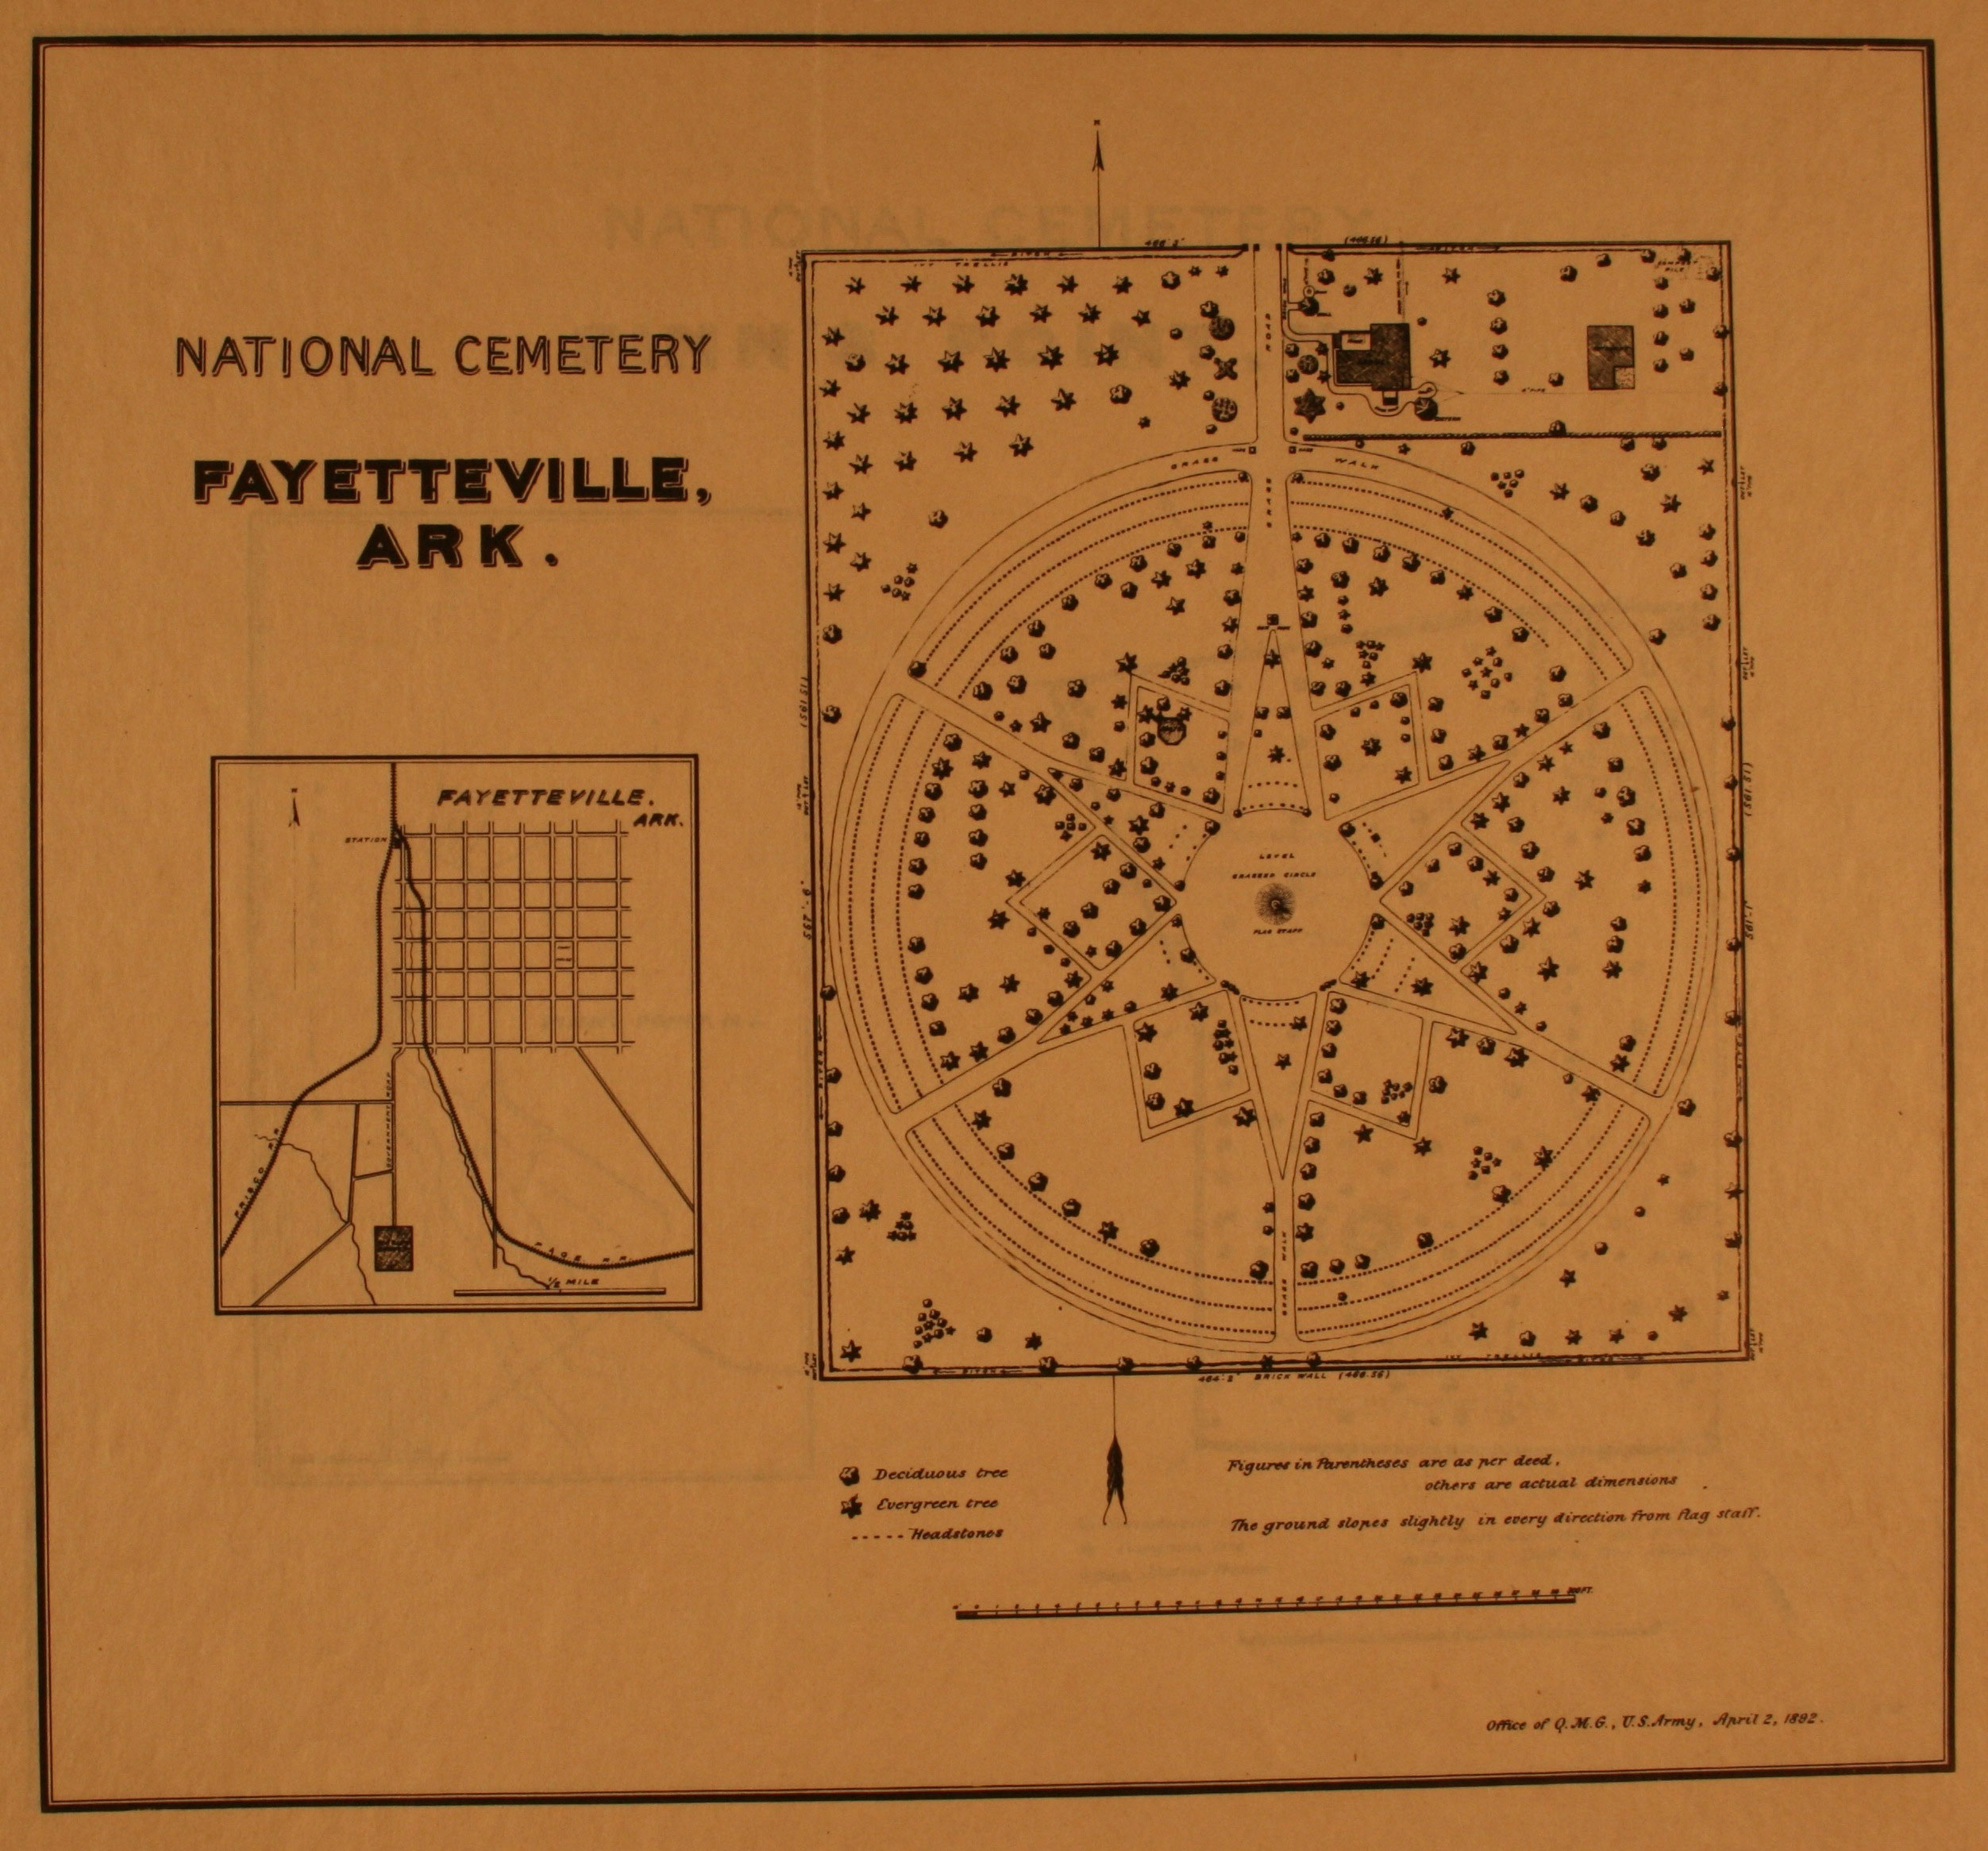 1893 site plan of fayetteville national cemetery courtesy of the national archives and records administration click on image to enlarge